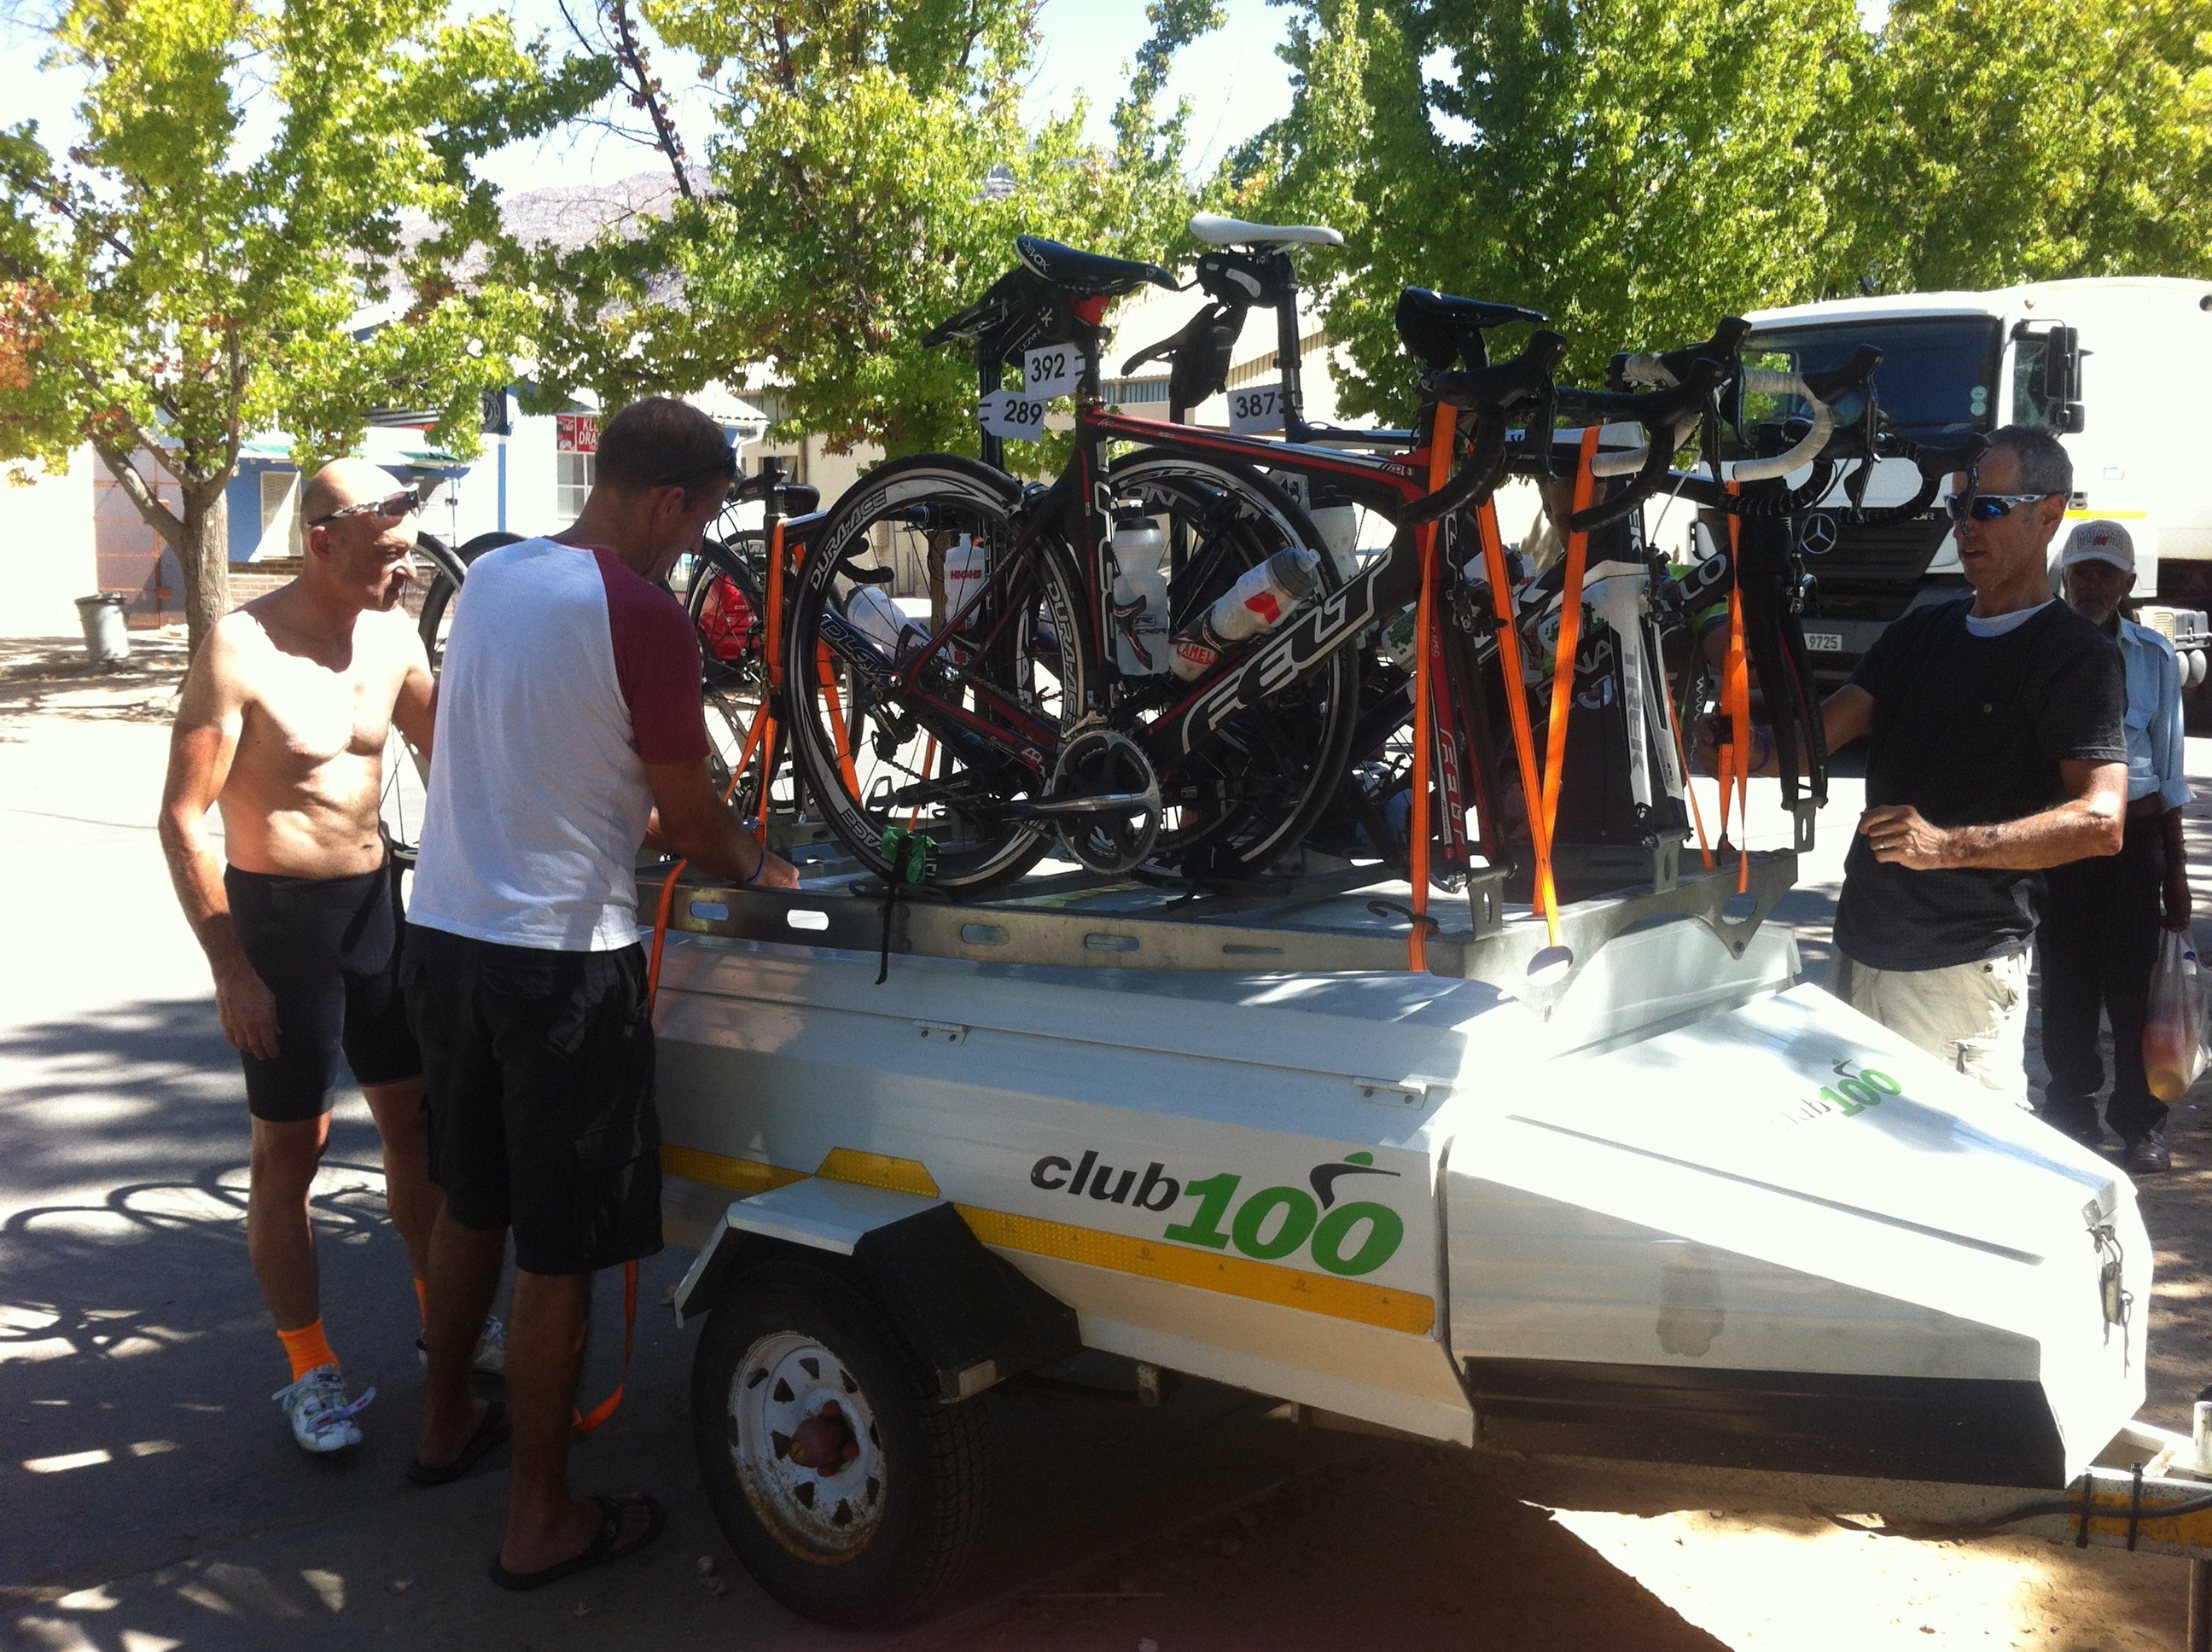 loading the trailer, end of Day 2, Tour de Boland, Op te Berg